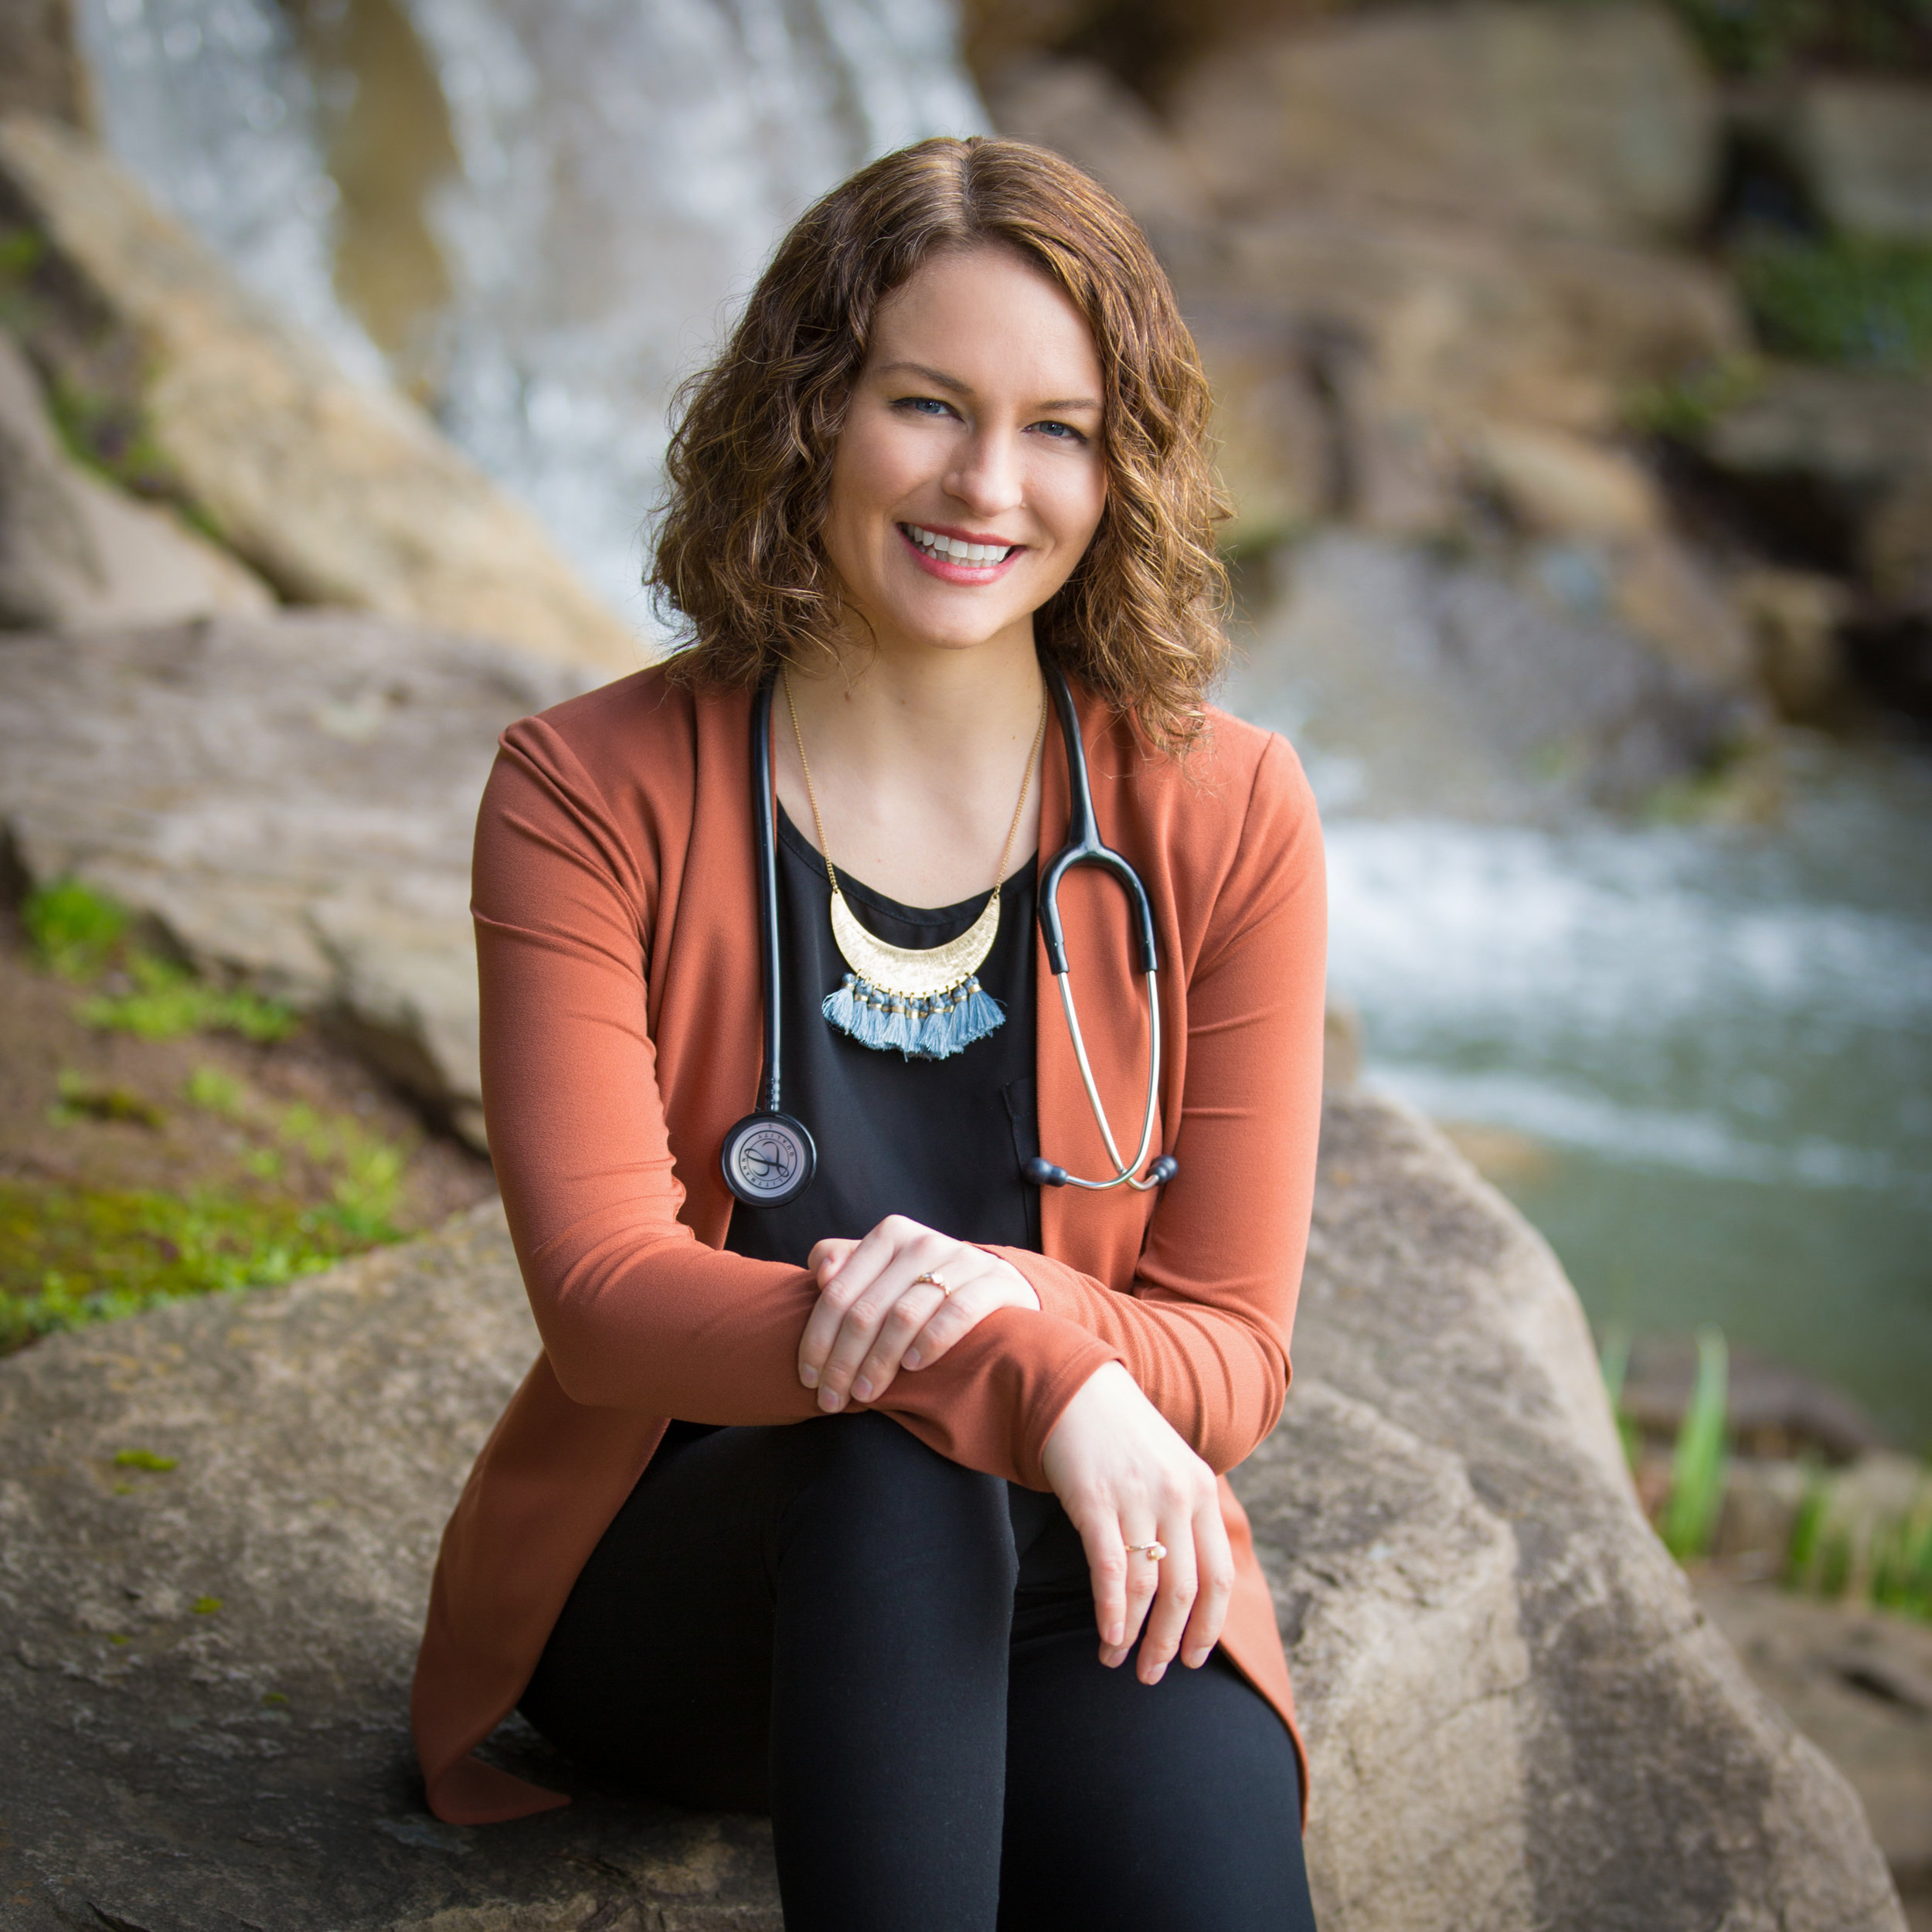 Featuring  Dr. Chelsea Jamison of Northwest Integrative Medicine